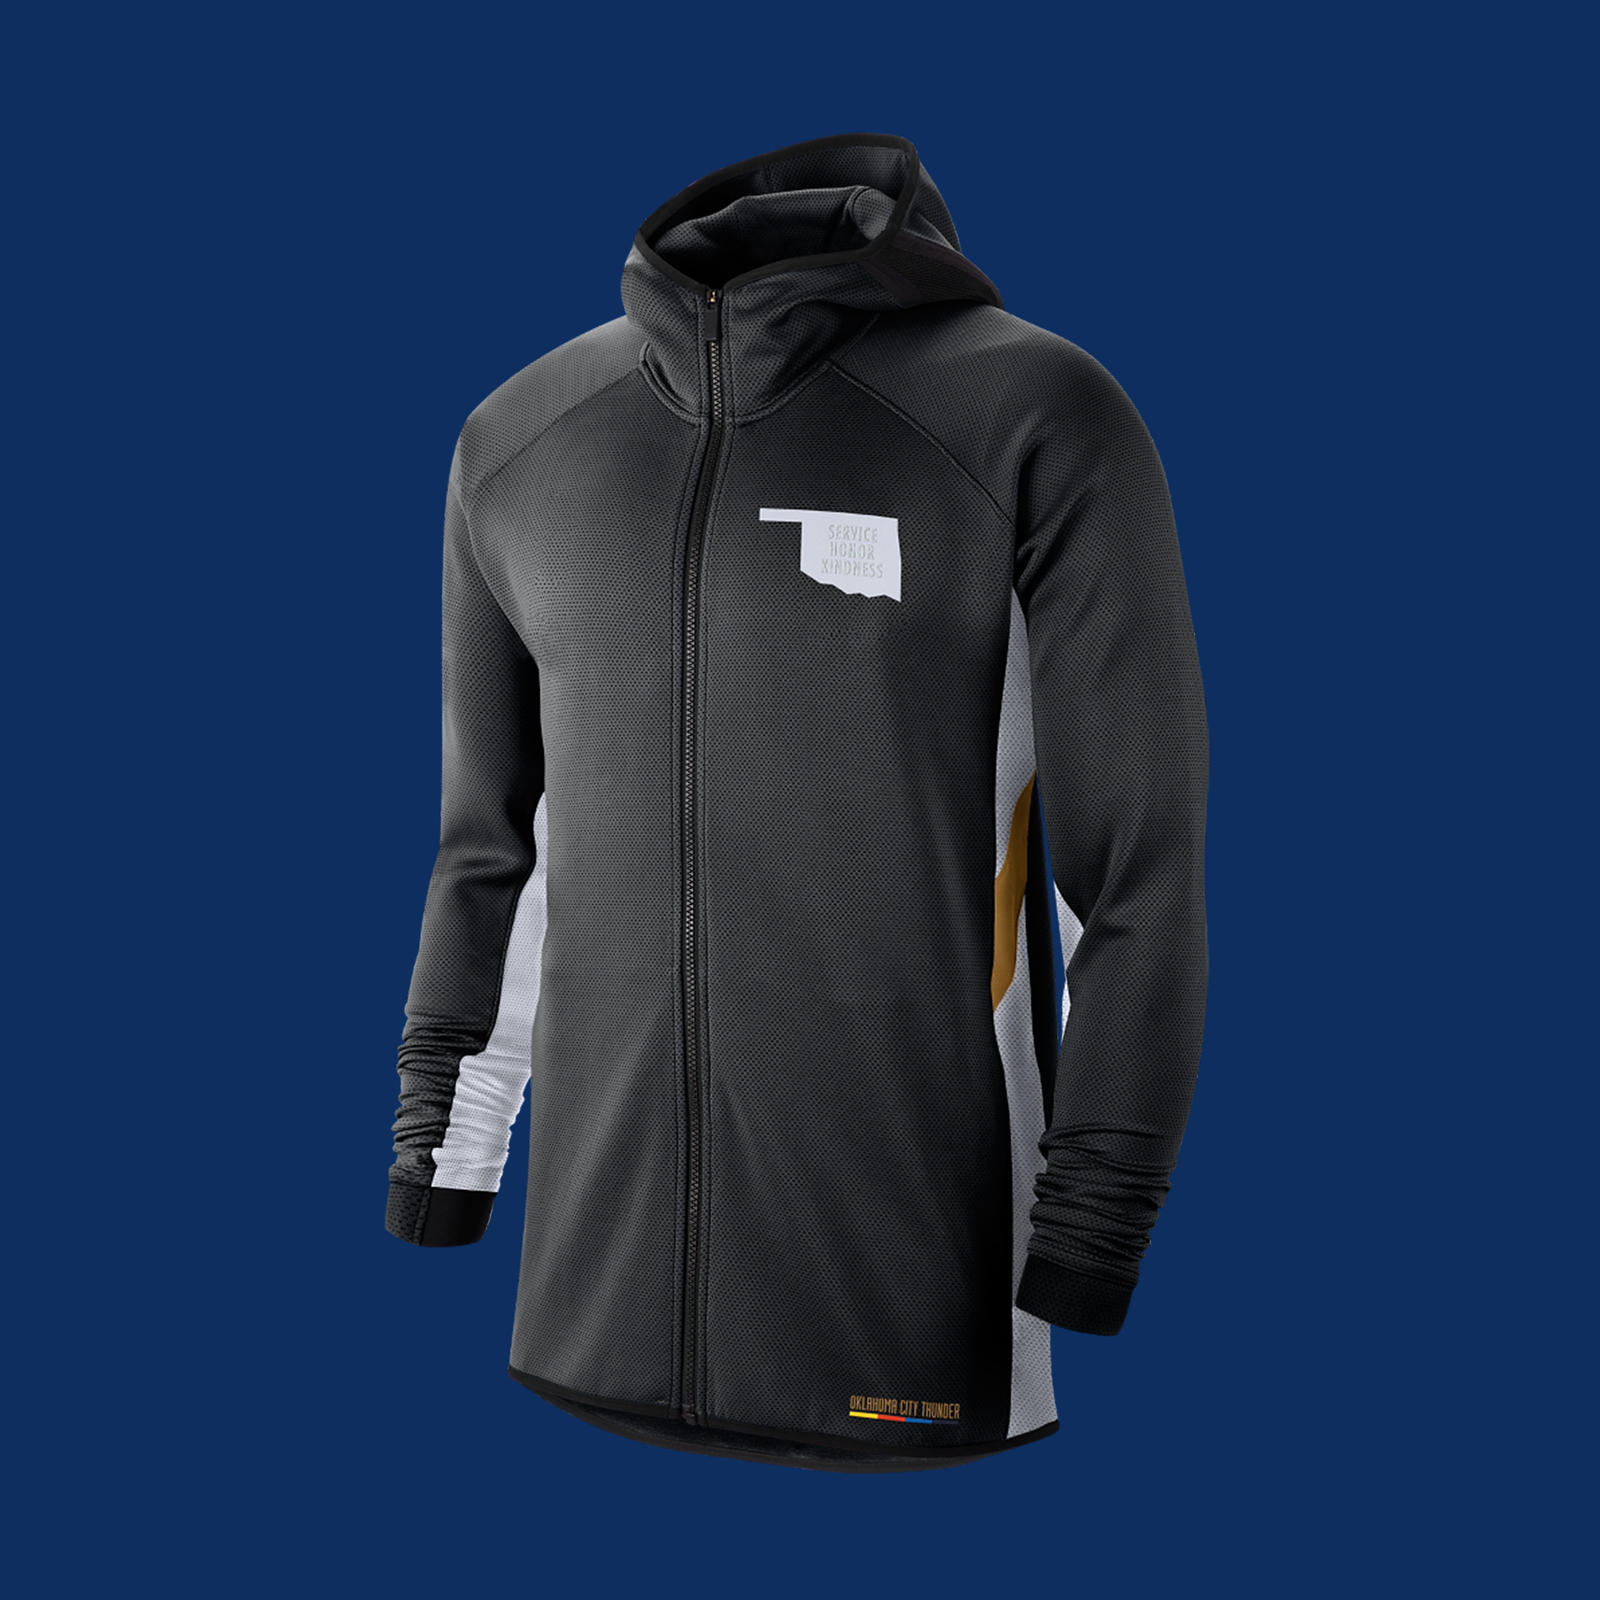 Nike NBA Earned Edition Showtime Hoodies 2019-20 Official Images 8